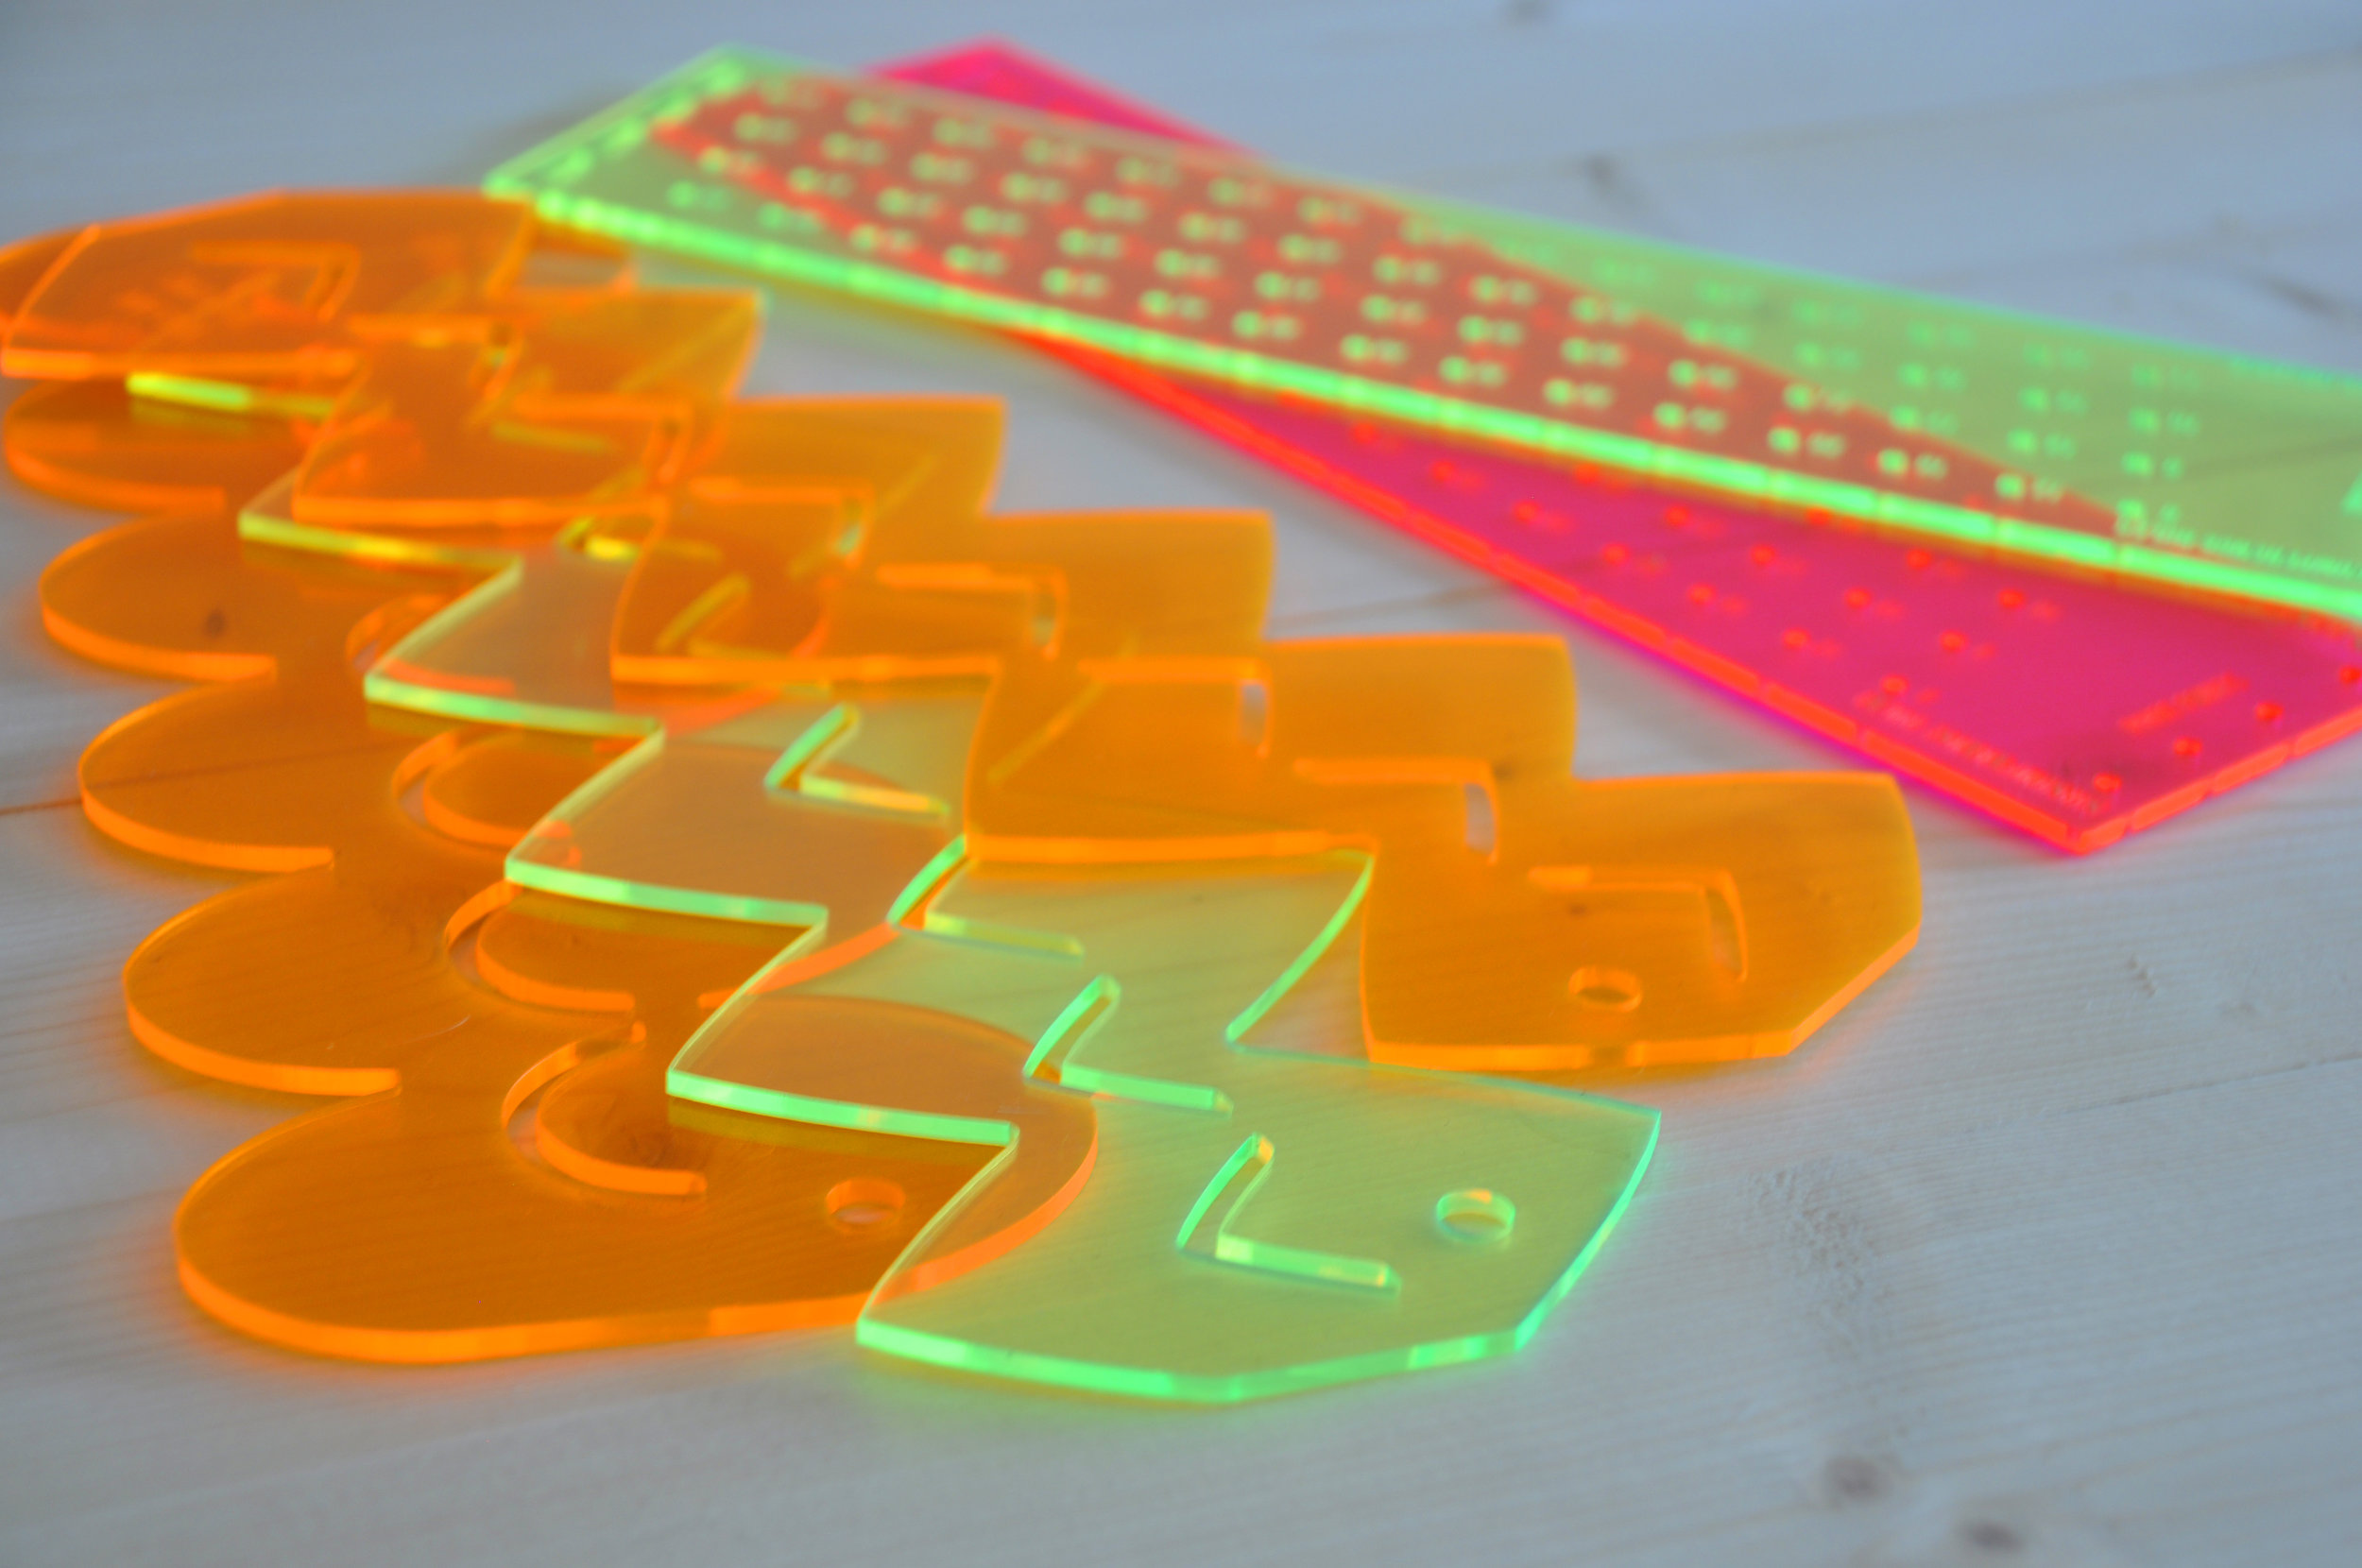 Edgewater Workbench in Chicago offers laser cutting services.